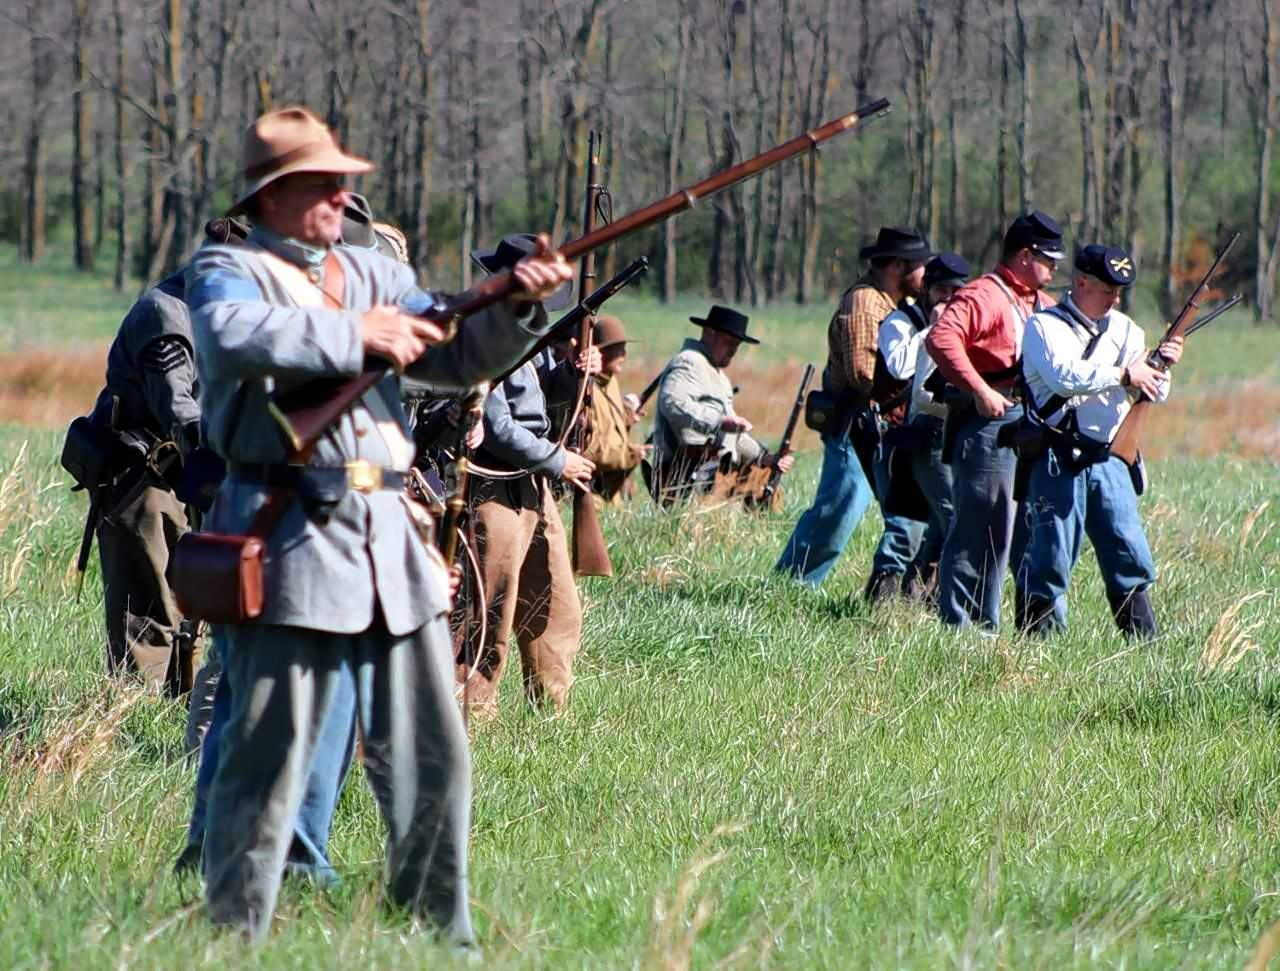 Confederate soldiers on foot engage in the battle.